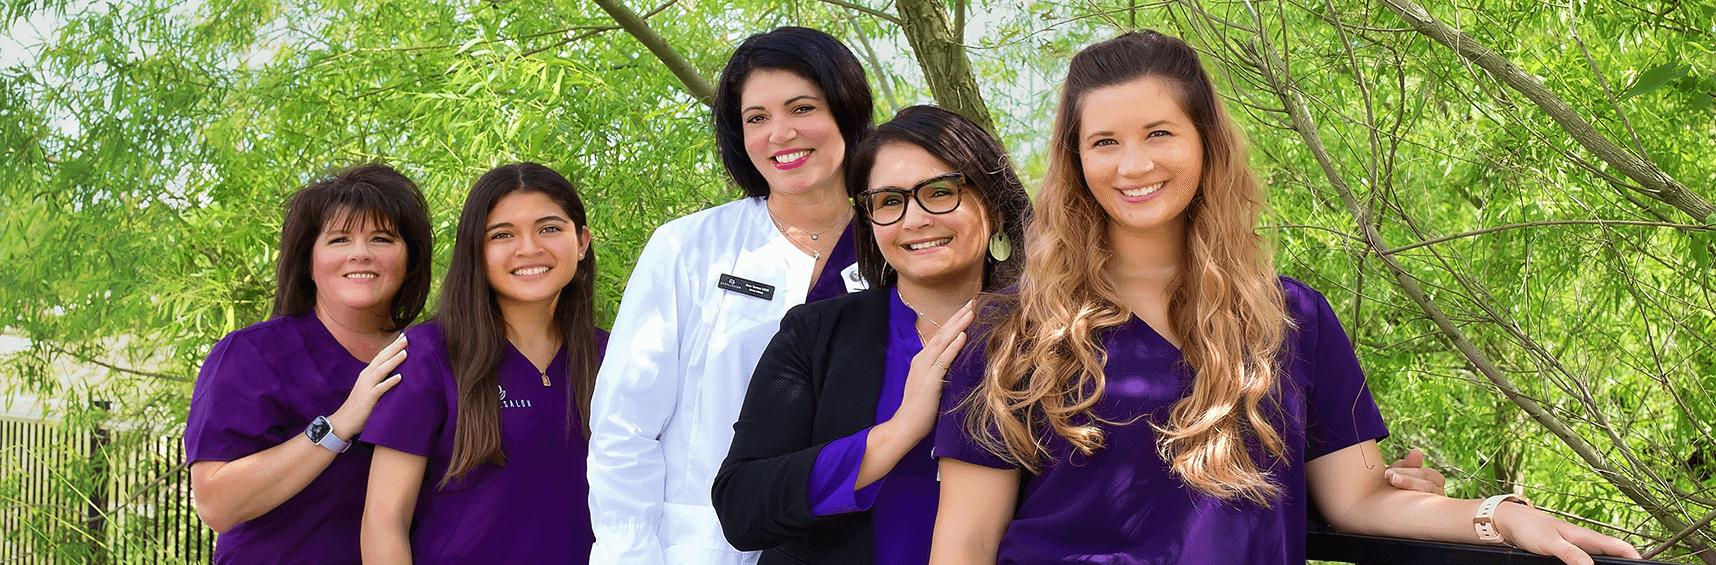 Dr. Torres and her dental team at Dental Spa in Cedar Park, TX